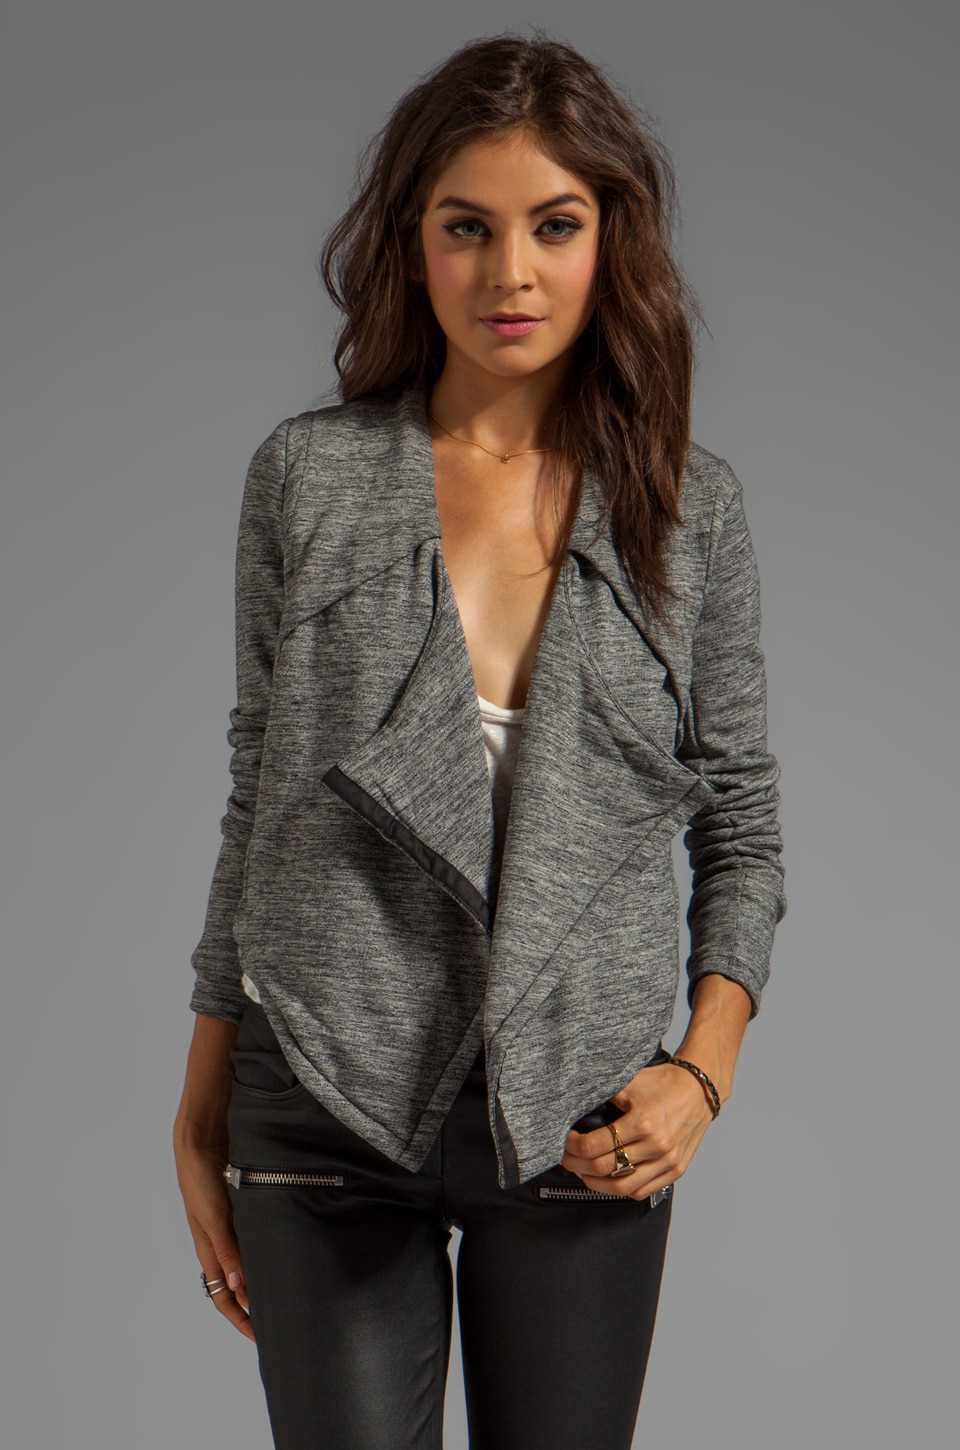 Funktional Drape Jacket in Graphite